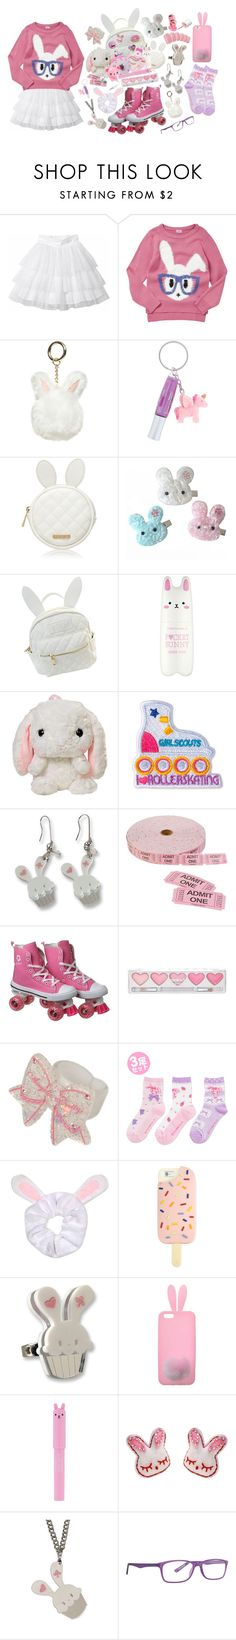 """love bun"" by orbangel ❤ liked on Polyvore featuring Dorothy Perkins, Forever New, cutekawaii, Tony Moly, Etude House, Hello Kitty, claire's, Tory Burch, Sweet & Co. and Miss Selfridge"